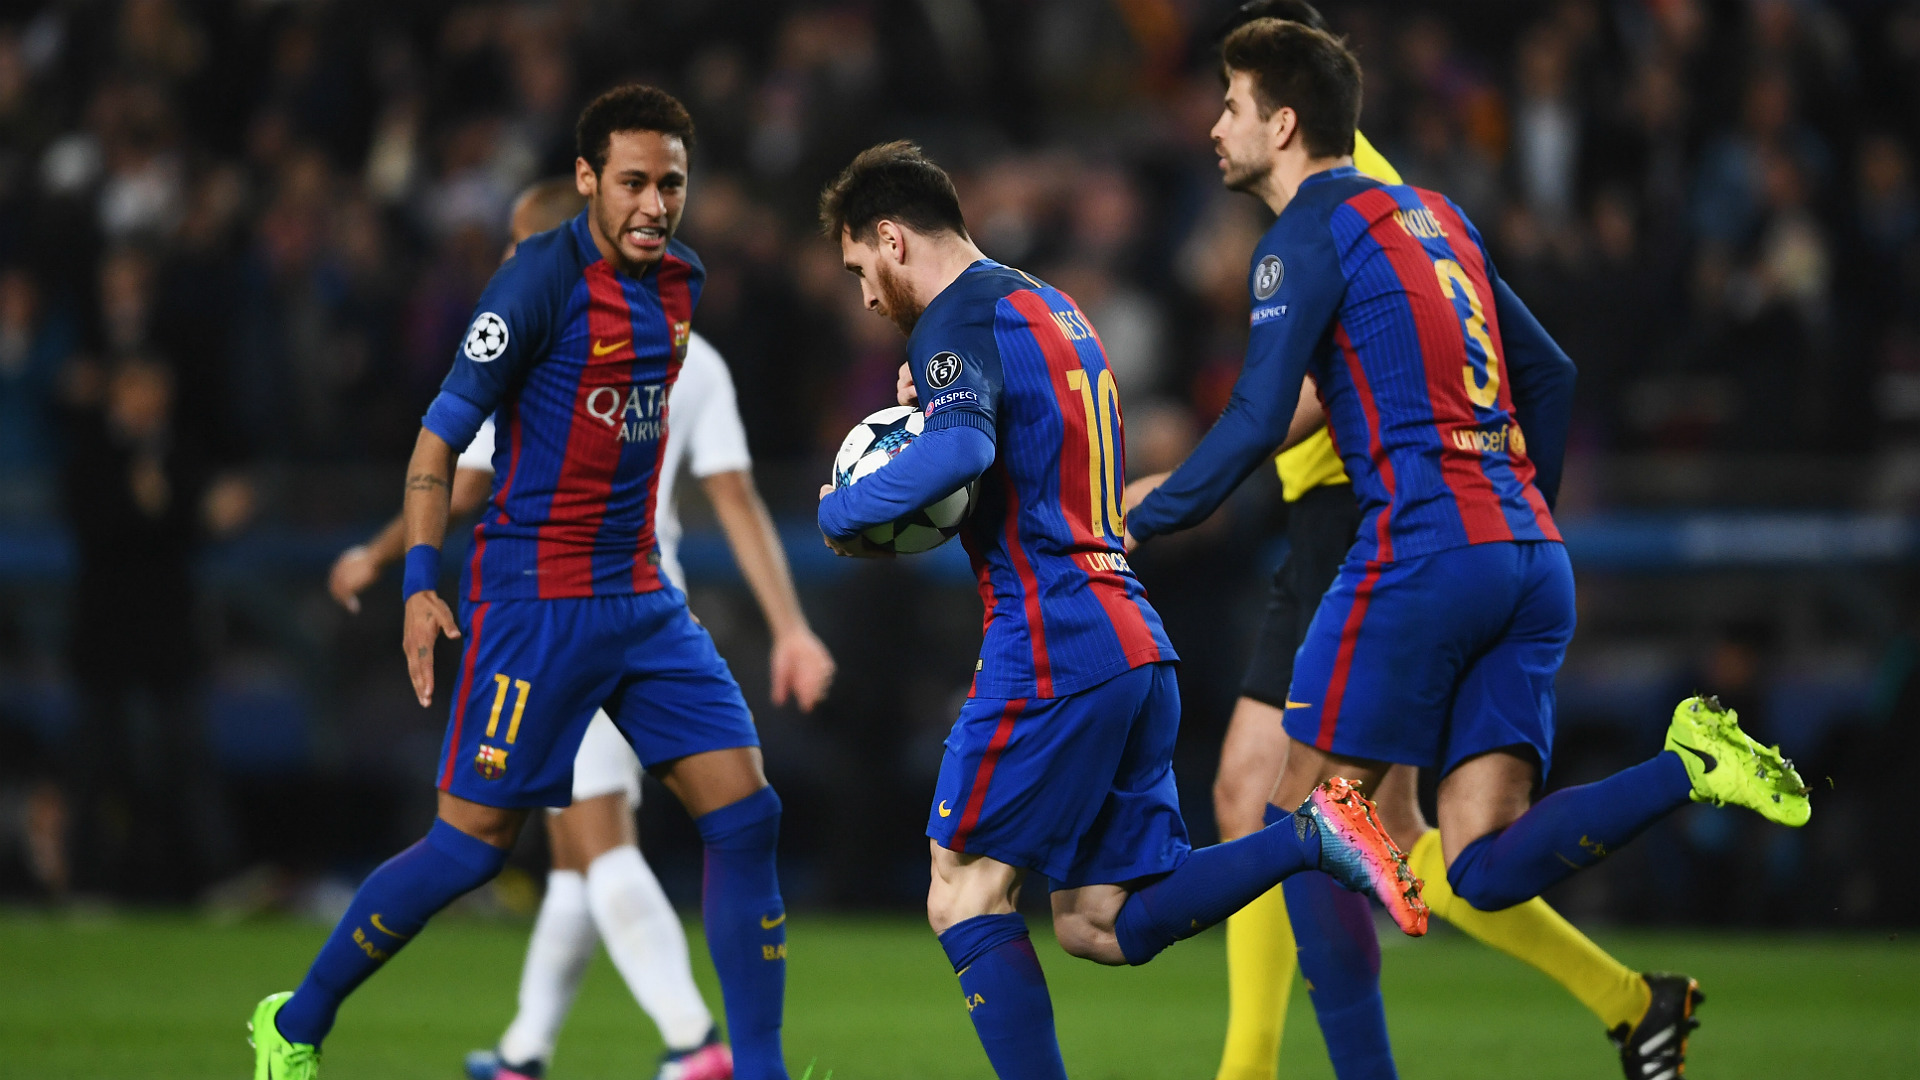 Barcelona complete greatest comeback in Champions League history